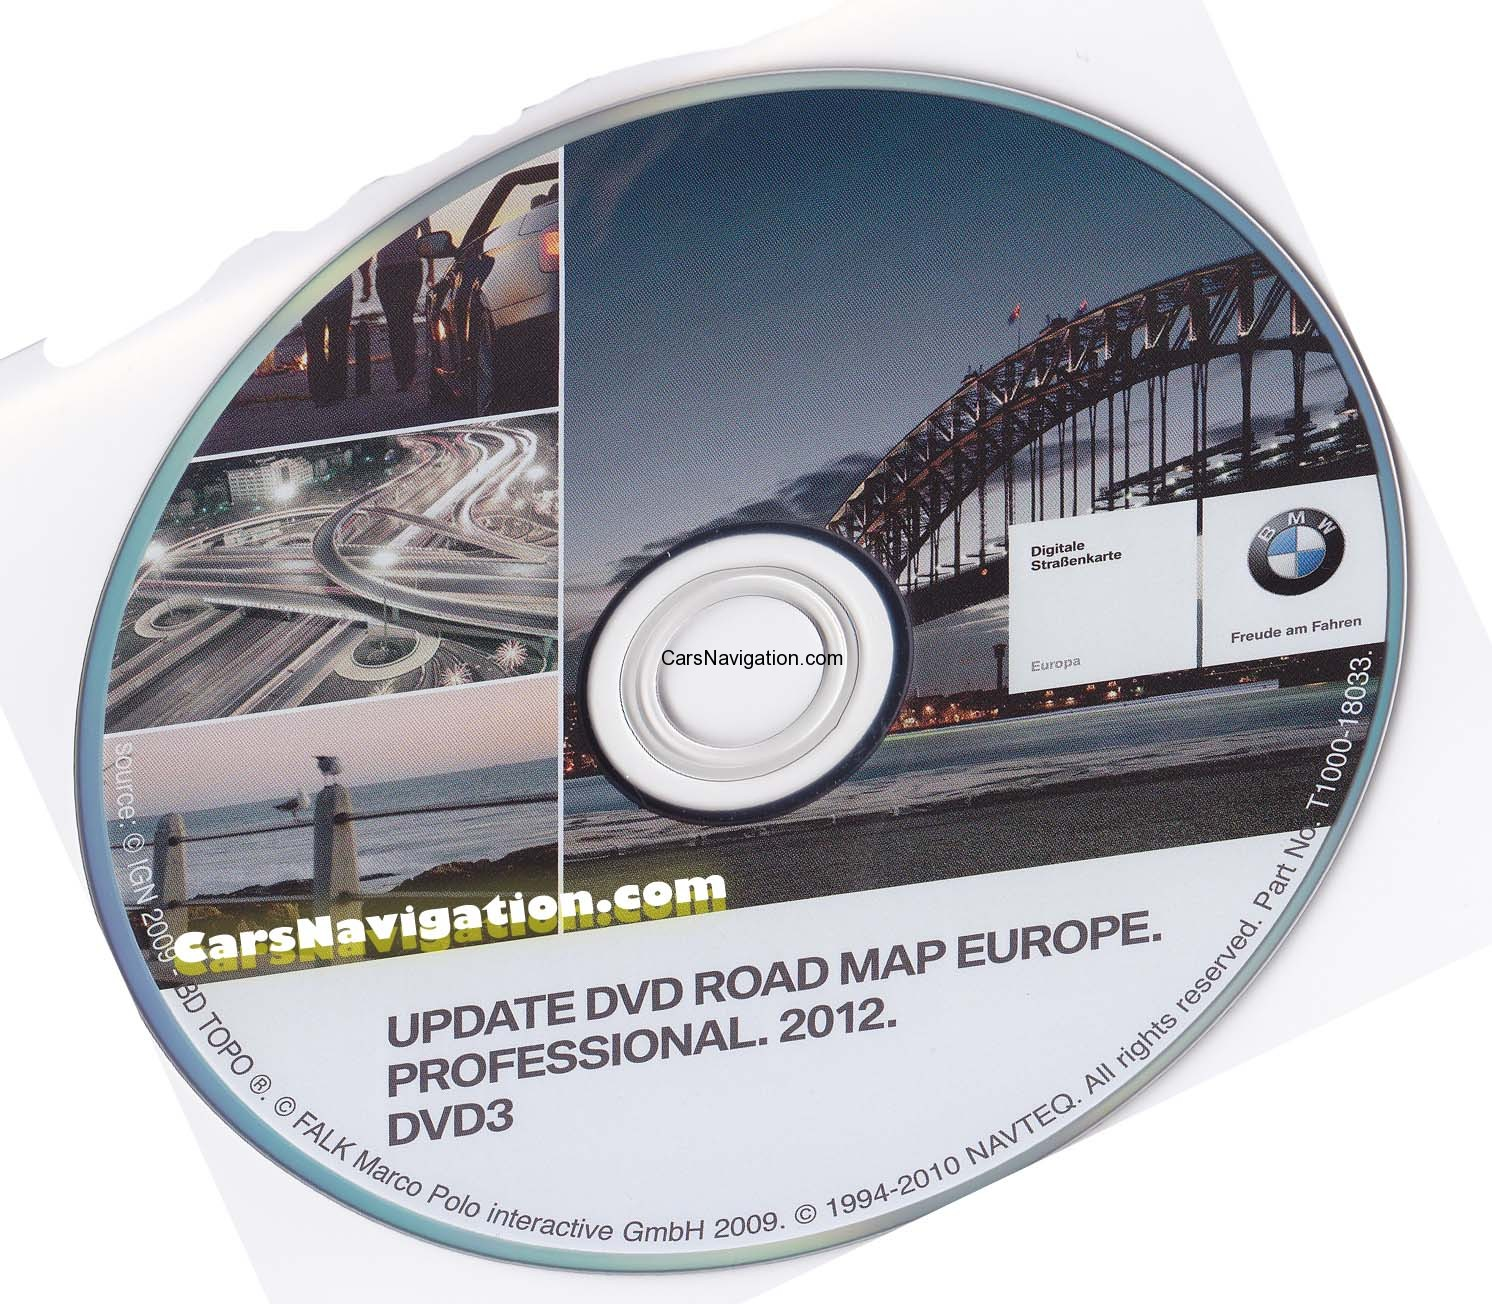 bmw road map europe professional download Download Bmw Road Map Europe Professional 2014   wateropen's diary